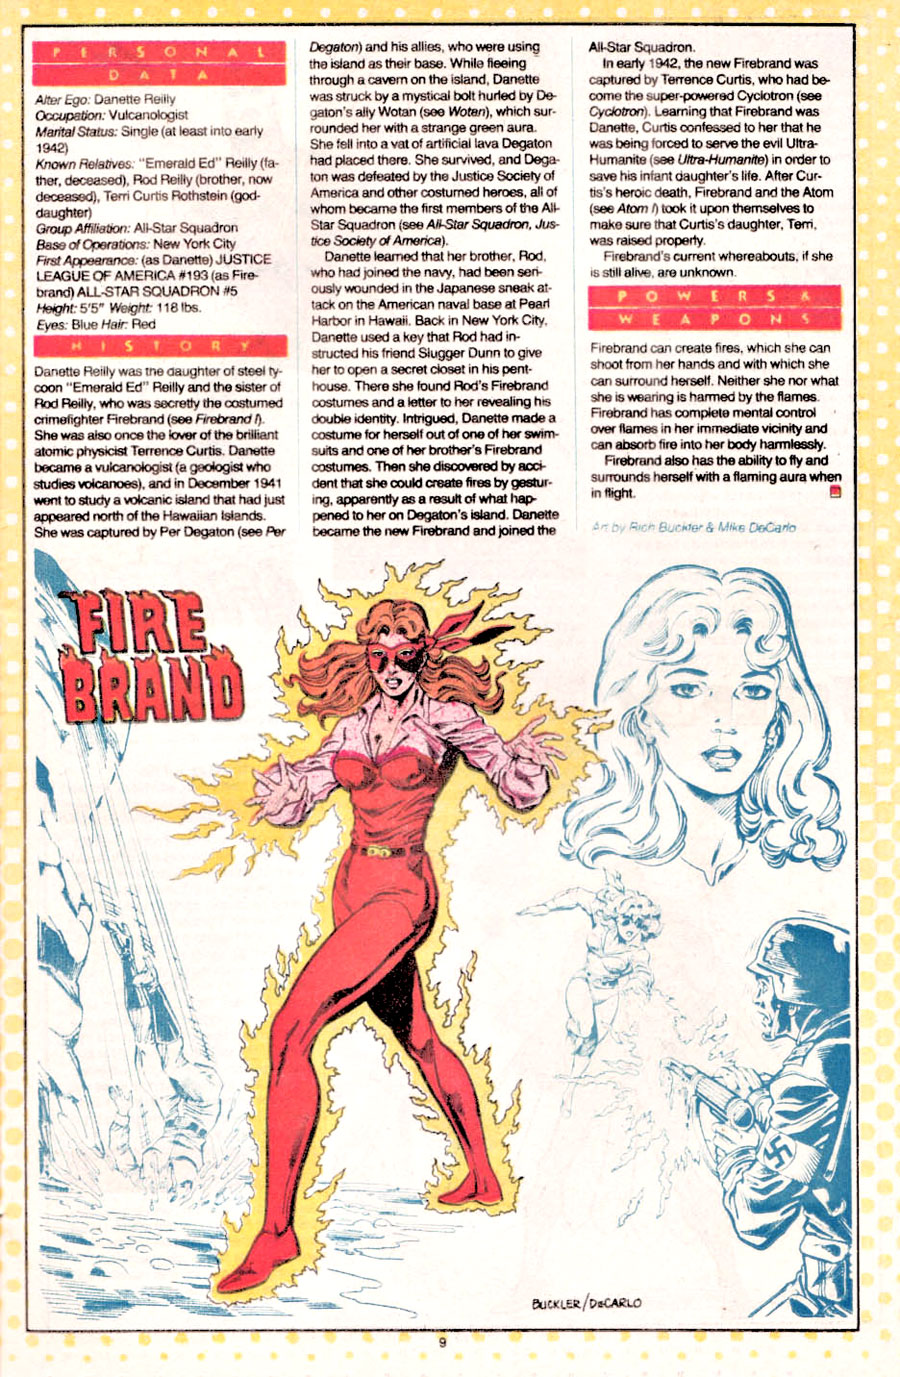 Firebrand from the All-Star Squadron by Rich Buckler and Mike DeCarlo